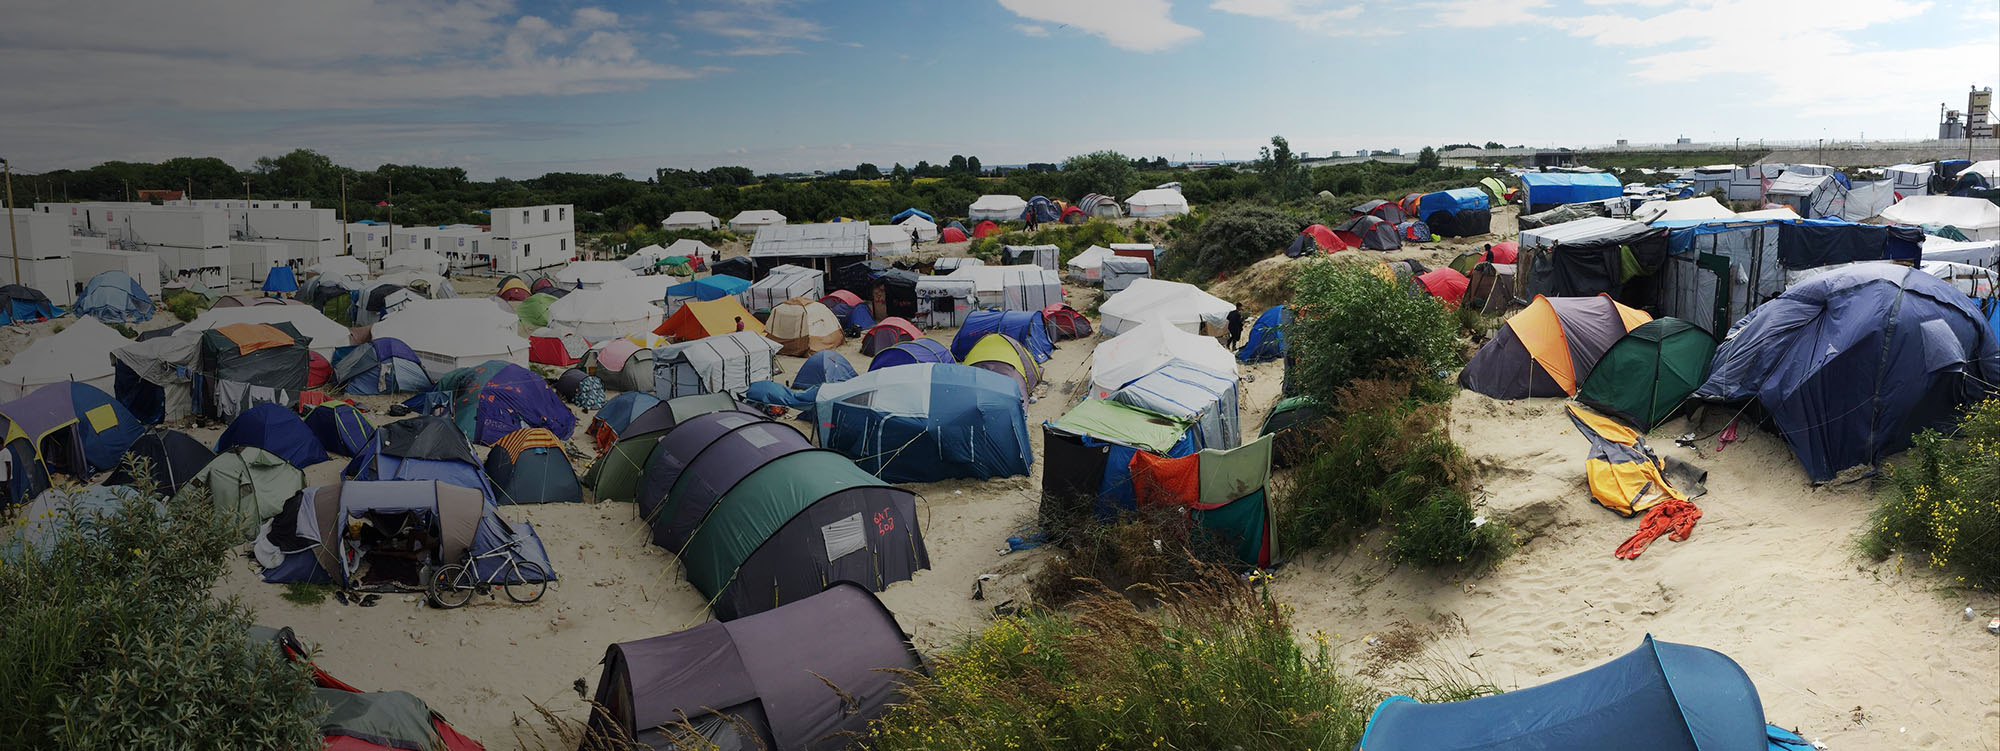 Learning from Calais The Jungle: An Interview With Architecture for Refugees